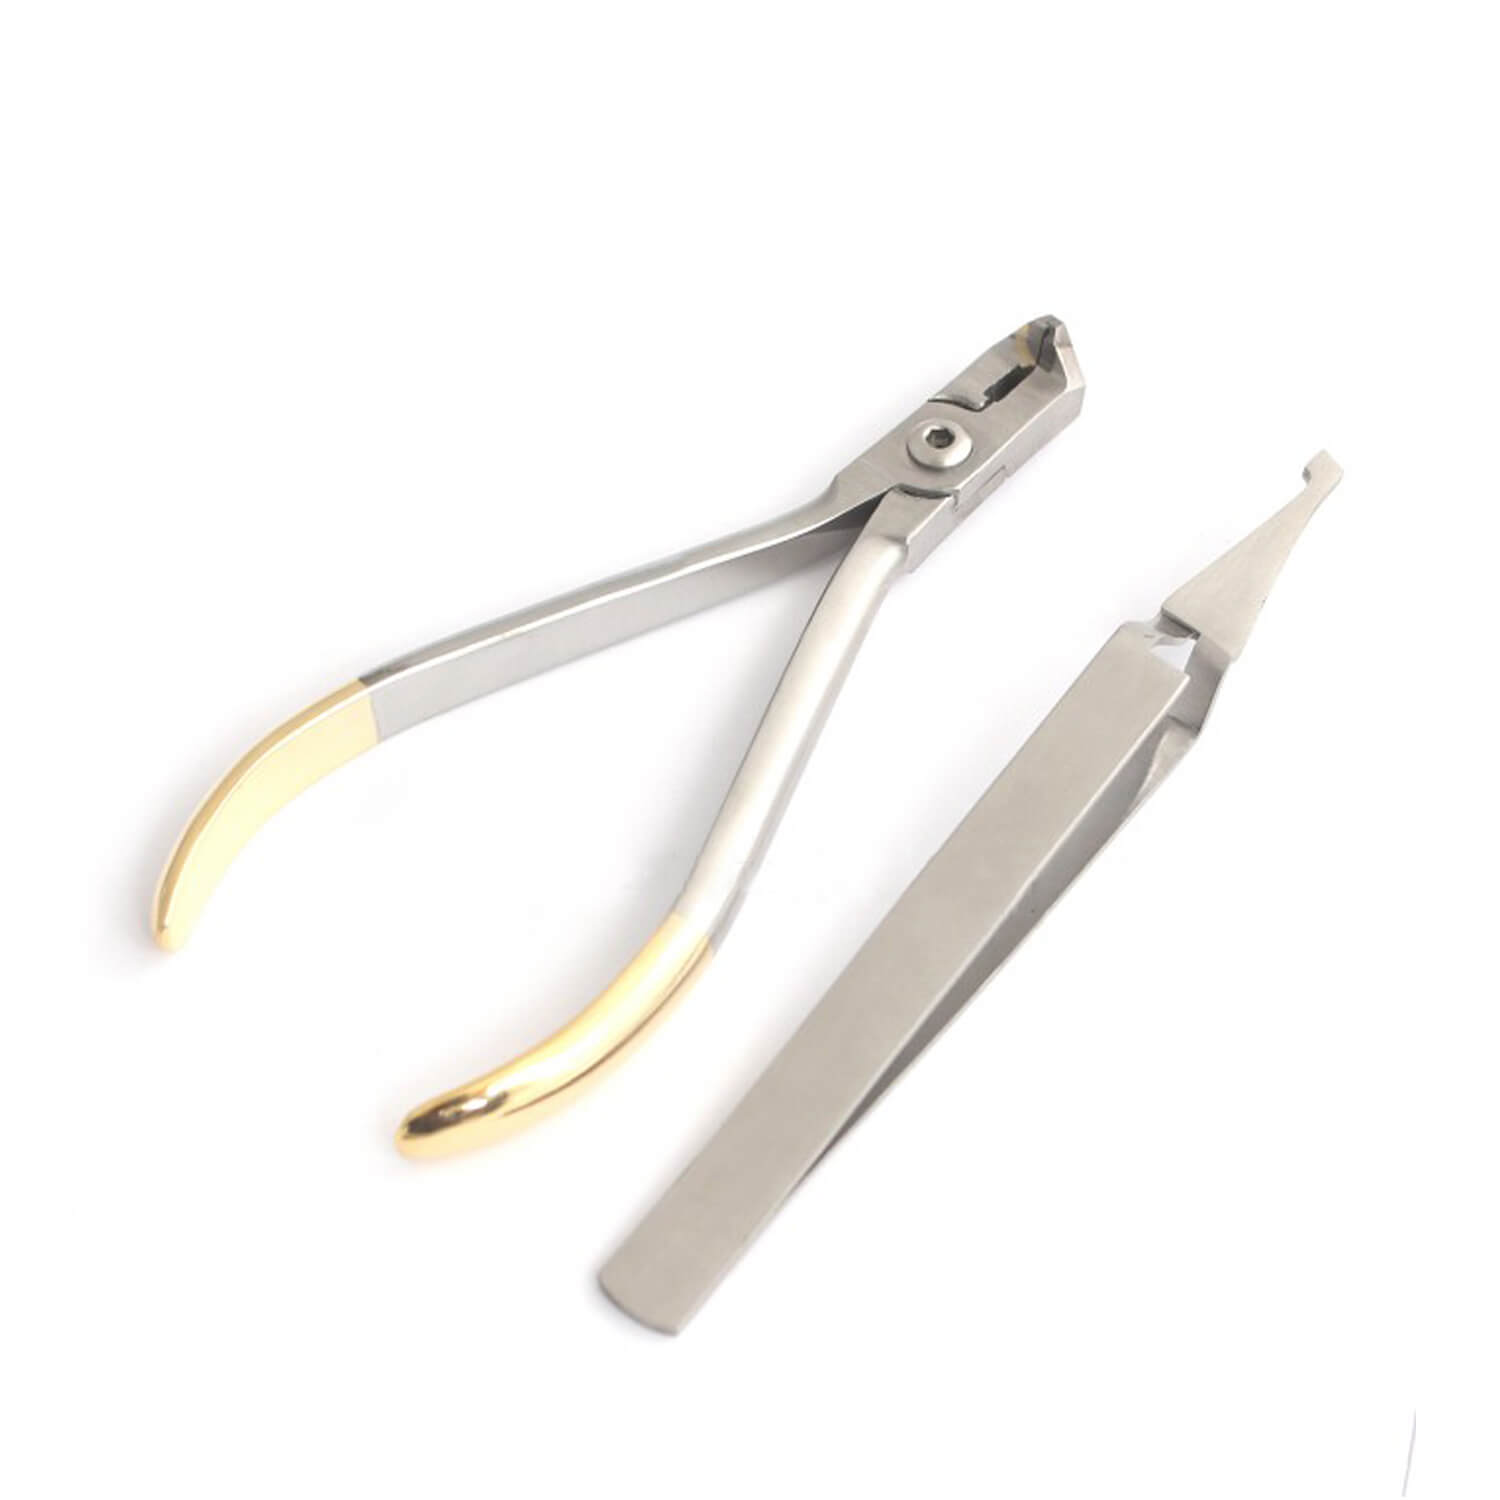 Dental Orthodontics Instruments Distal End Cutter Bracket Tweezers Kit Lab